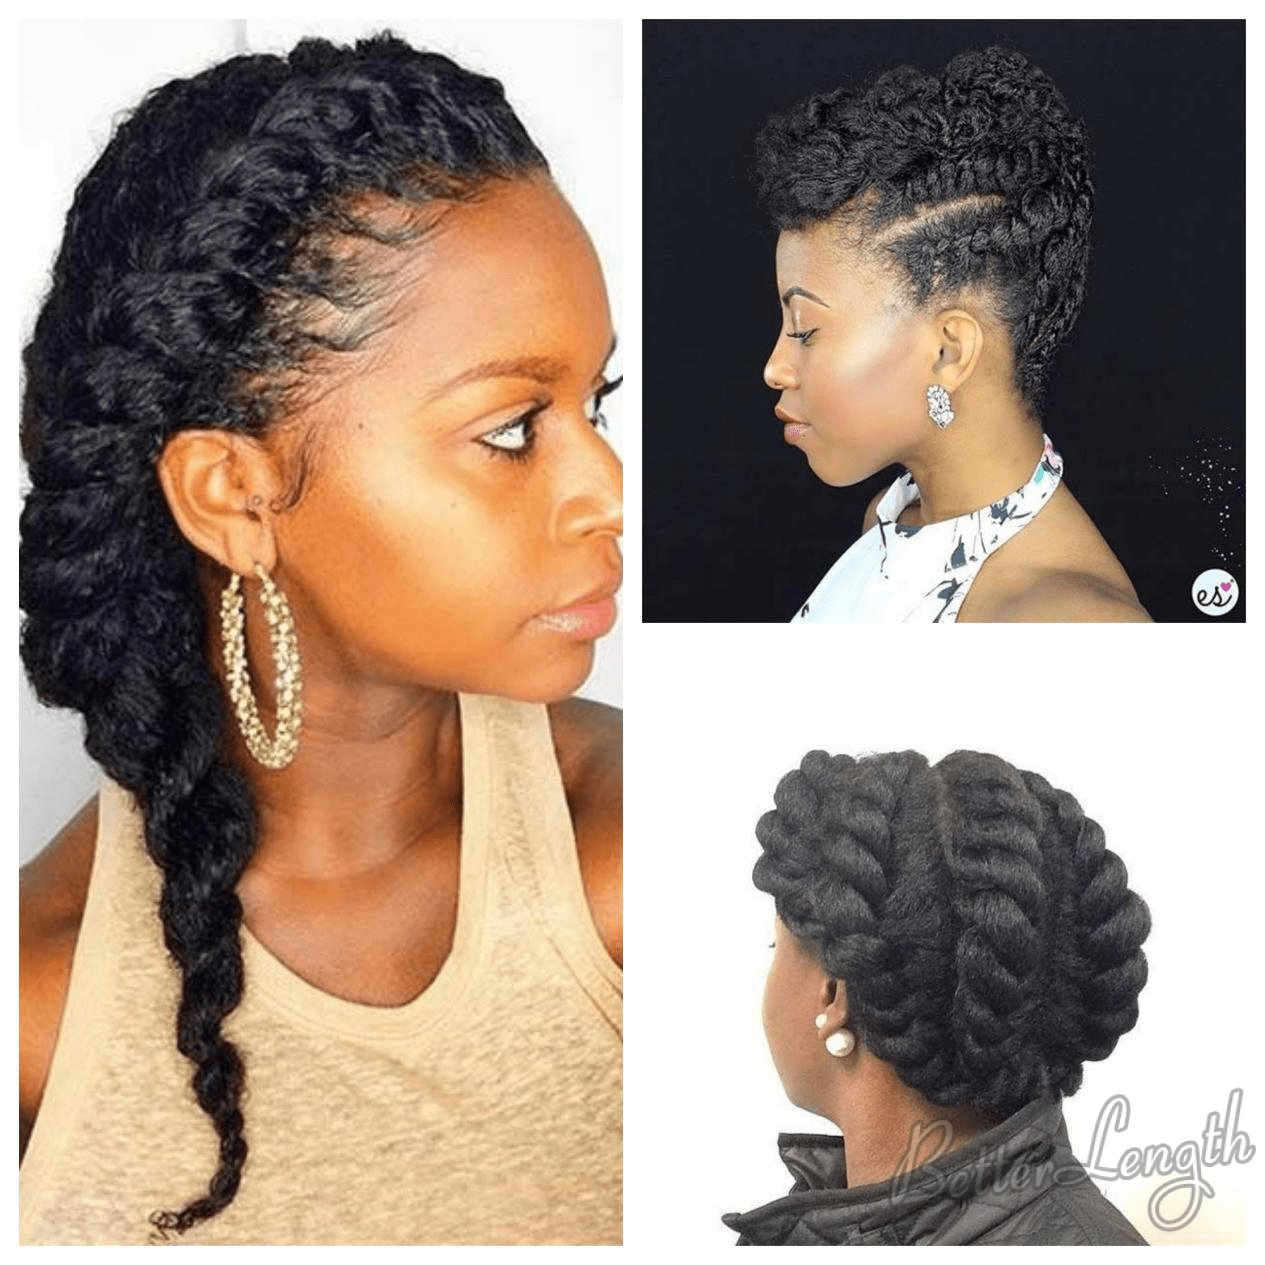 Free 7 Best Protective Hairstyles That Actually Protect Natural Hair For Black Women Betterlength Hair Wallpaper